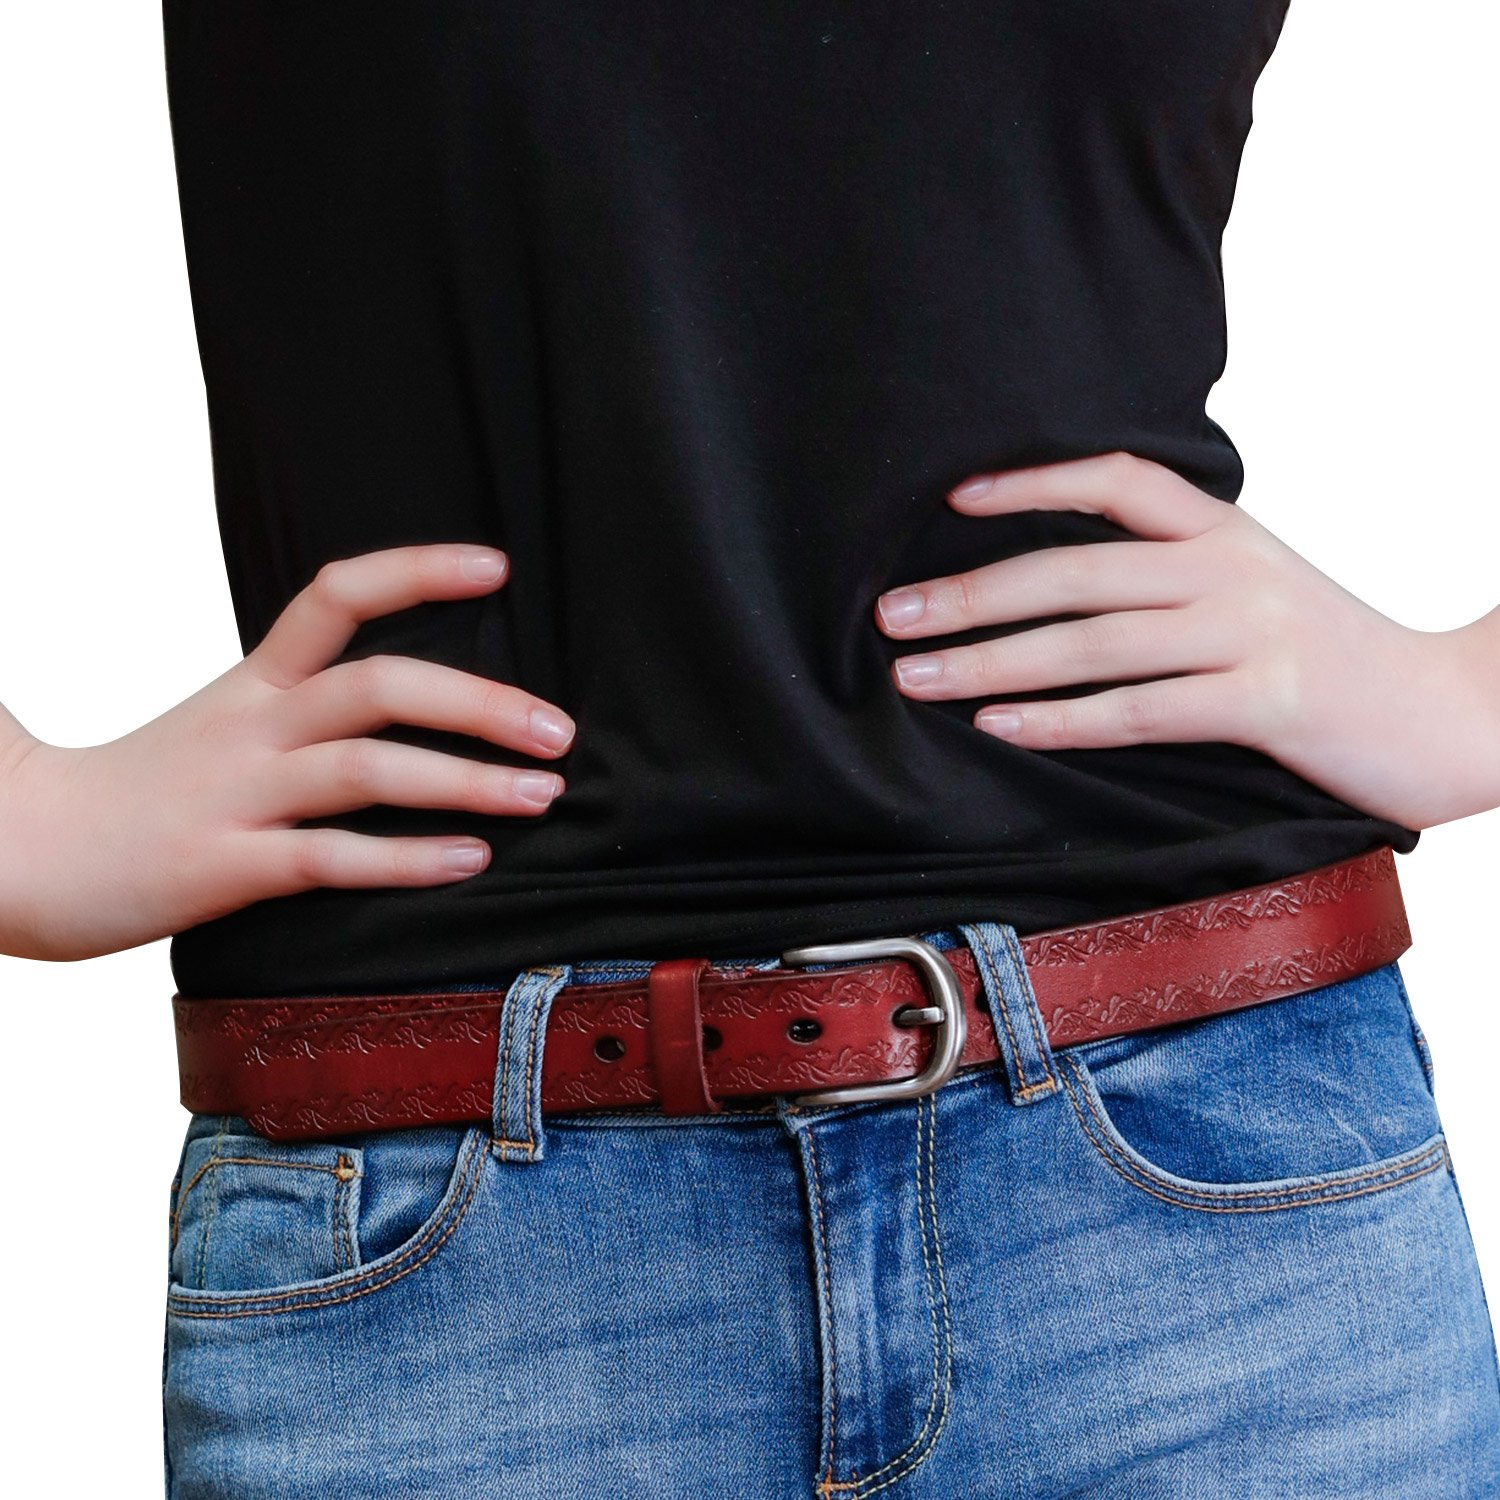 GSG Womens Trendy Embossed Genuine Leather Jeans Belt Casual Pin Buckle Belts for Women Summer Gifts M Brown